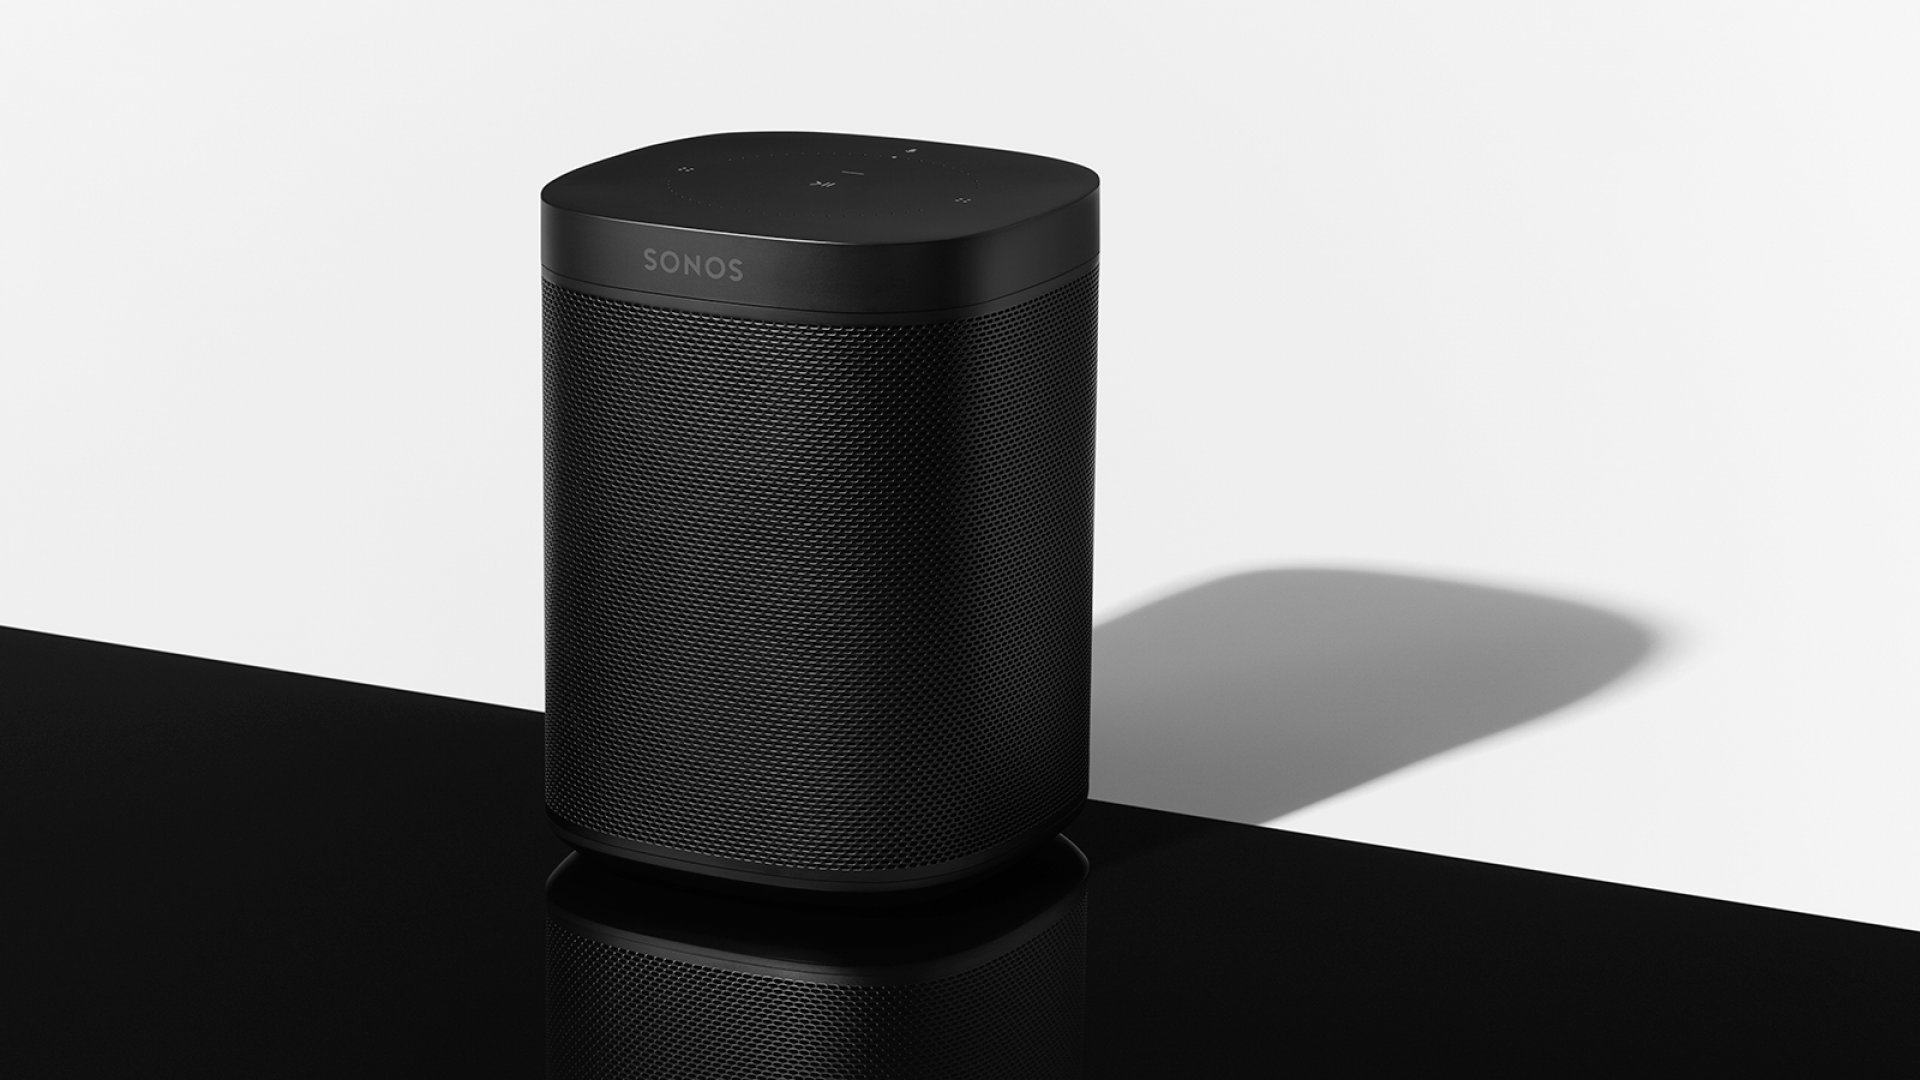 This amazing Alexa-powered speaker does it all.